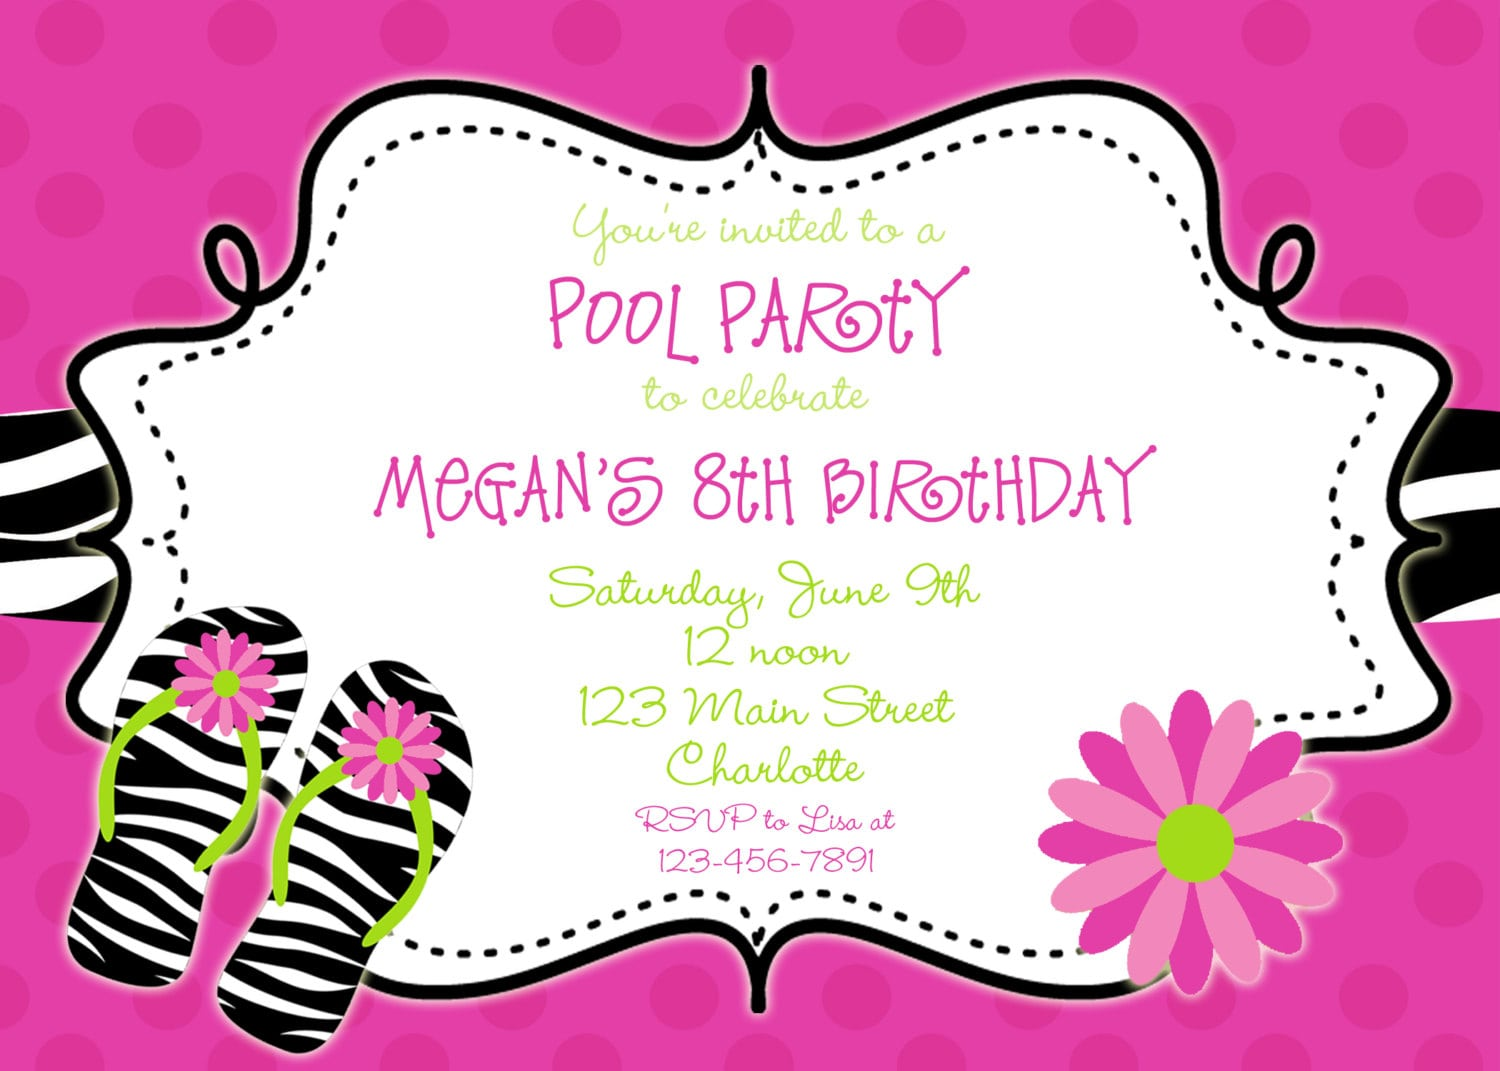 pool party invitations templates free - print free birthday pool party invitation